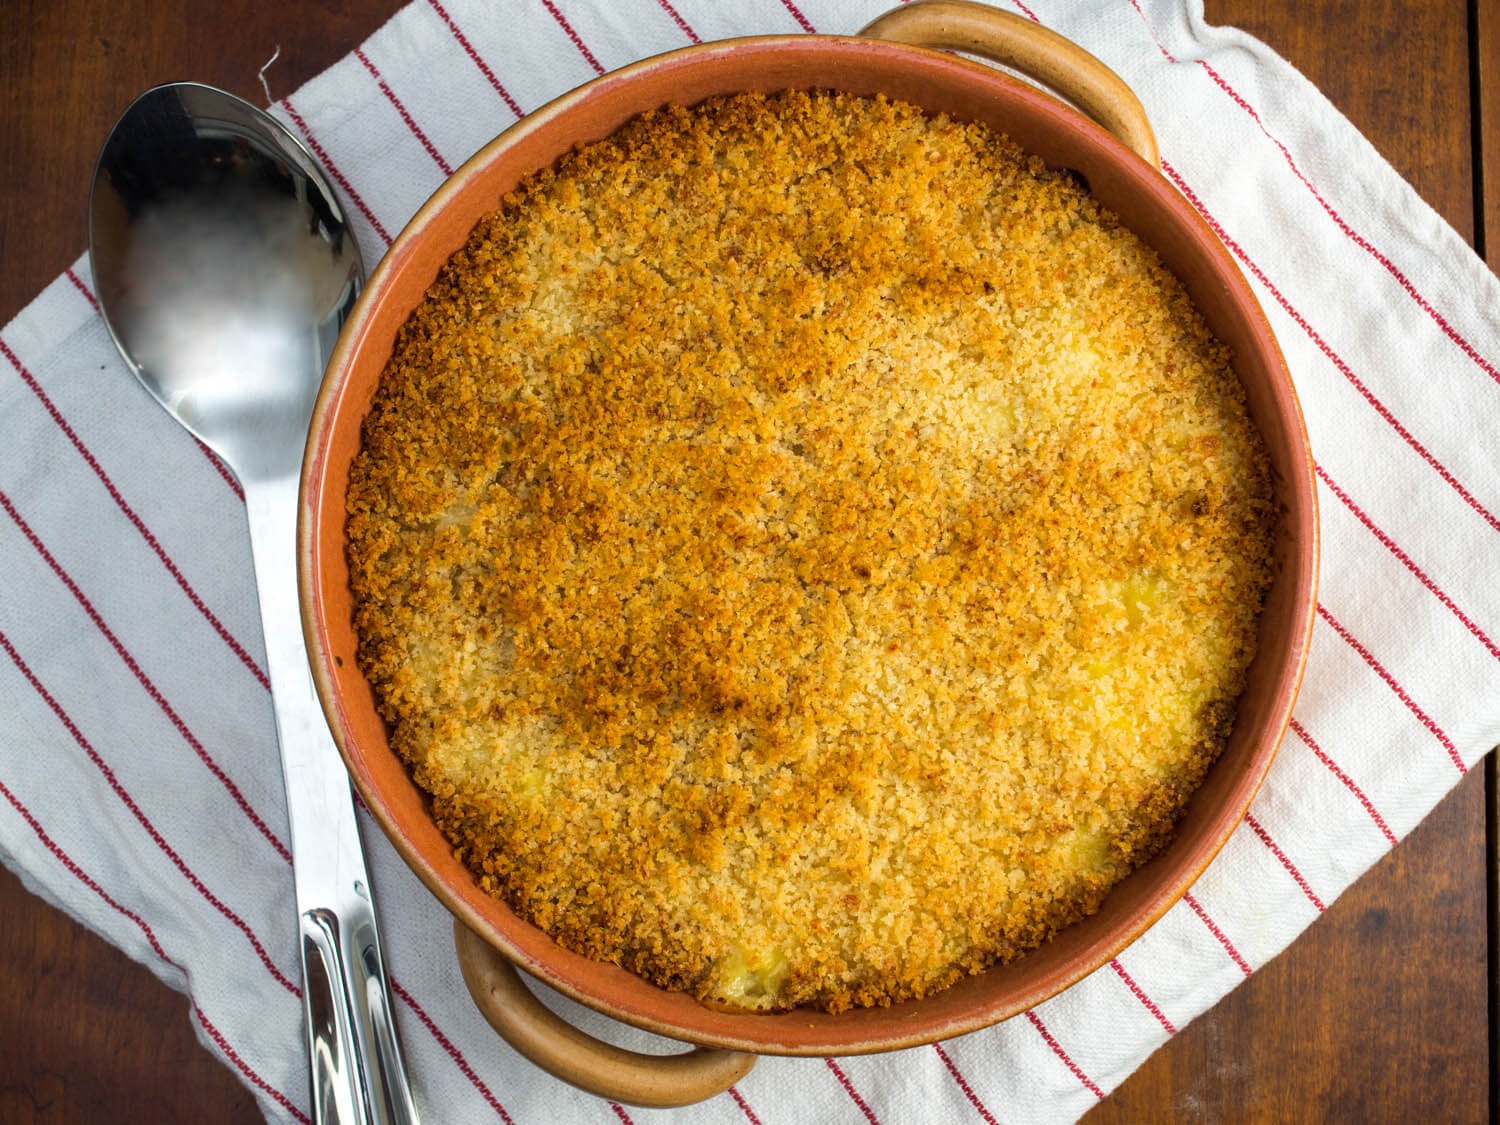 Baked Saffron Risotto With Mozzarella and Crispy Topping